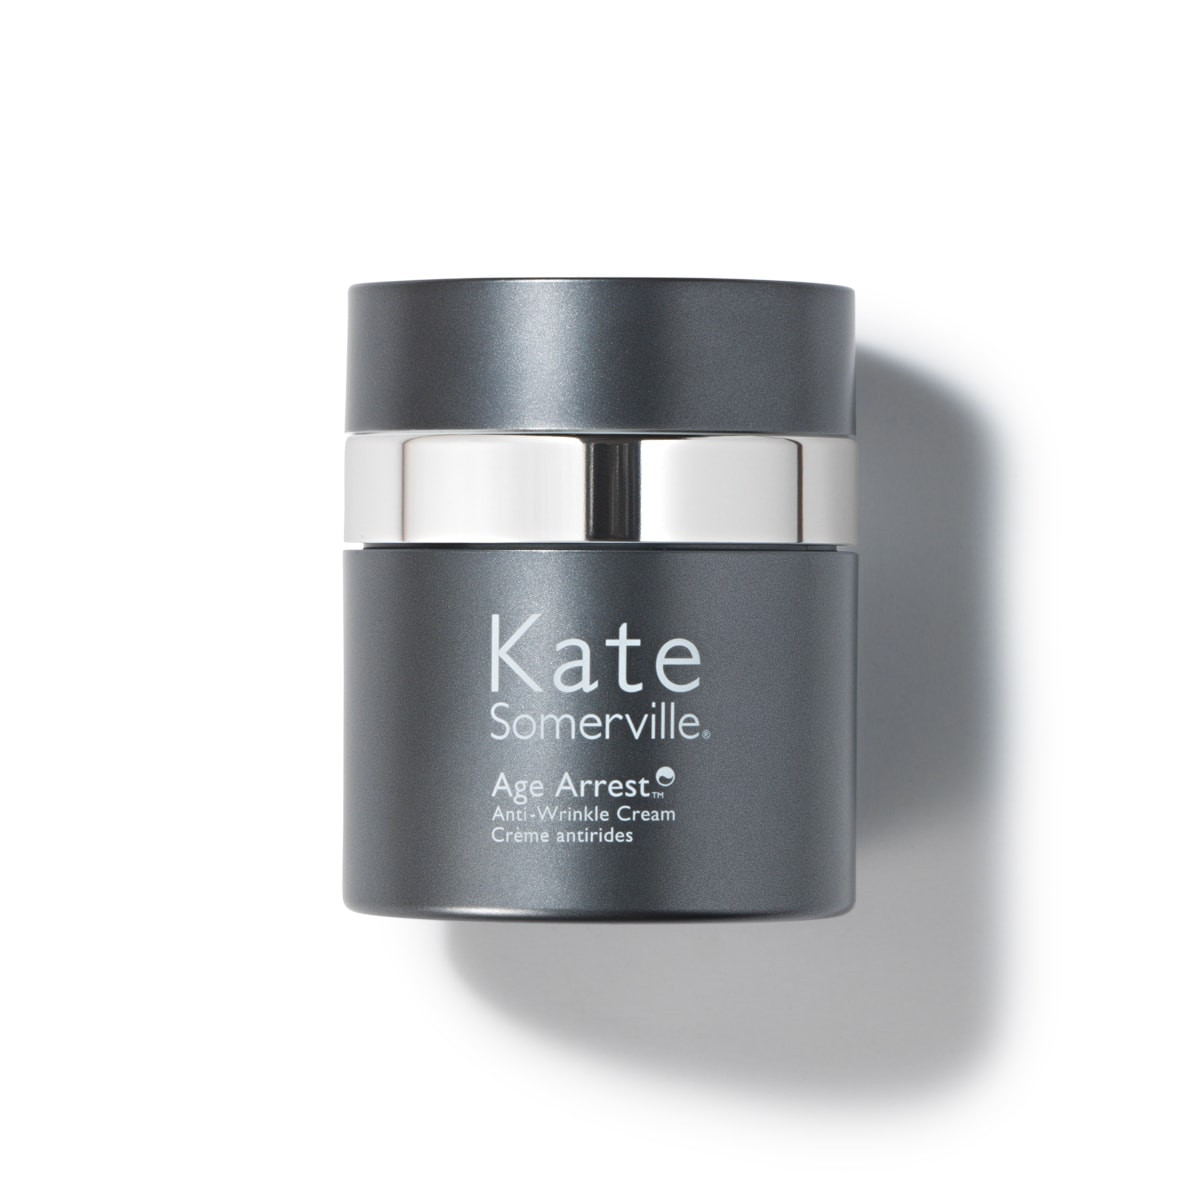 Kate Somerville Age Arrest Anti-Wrinkle Cream